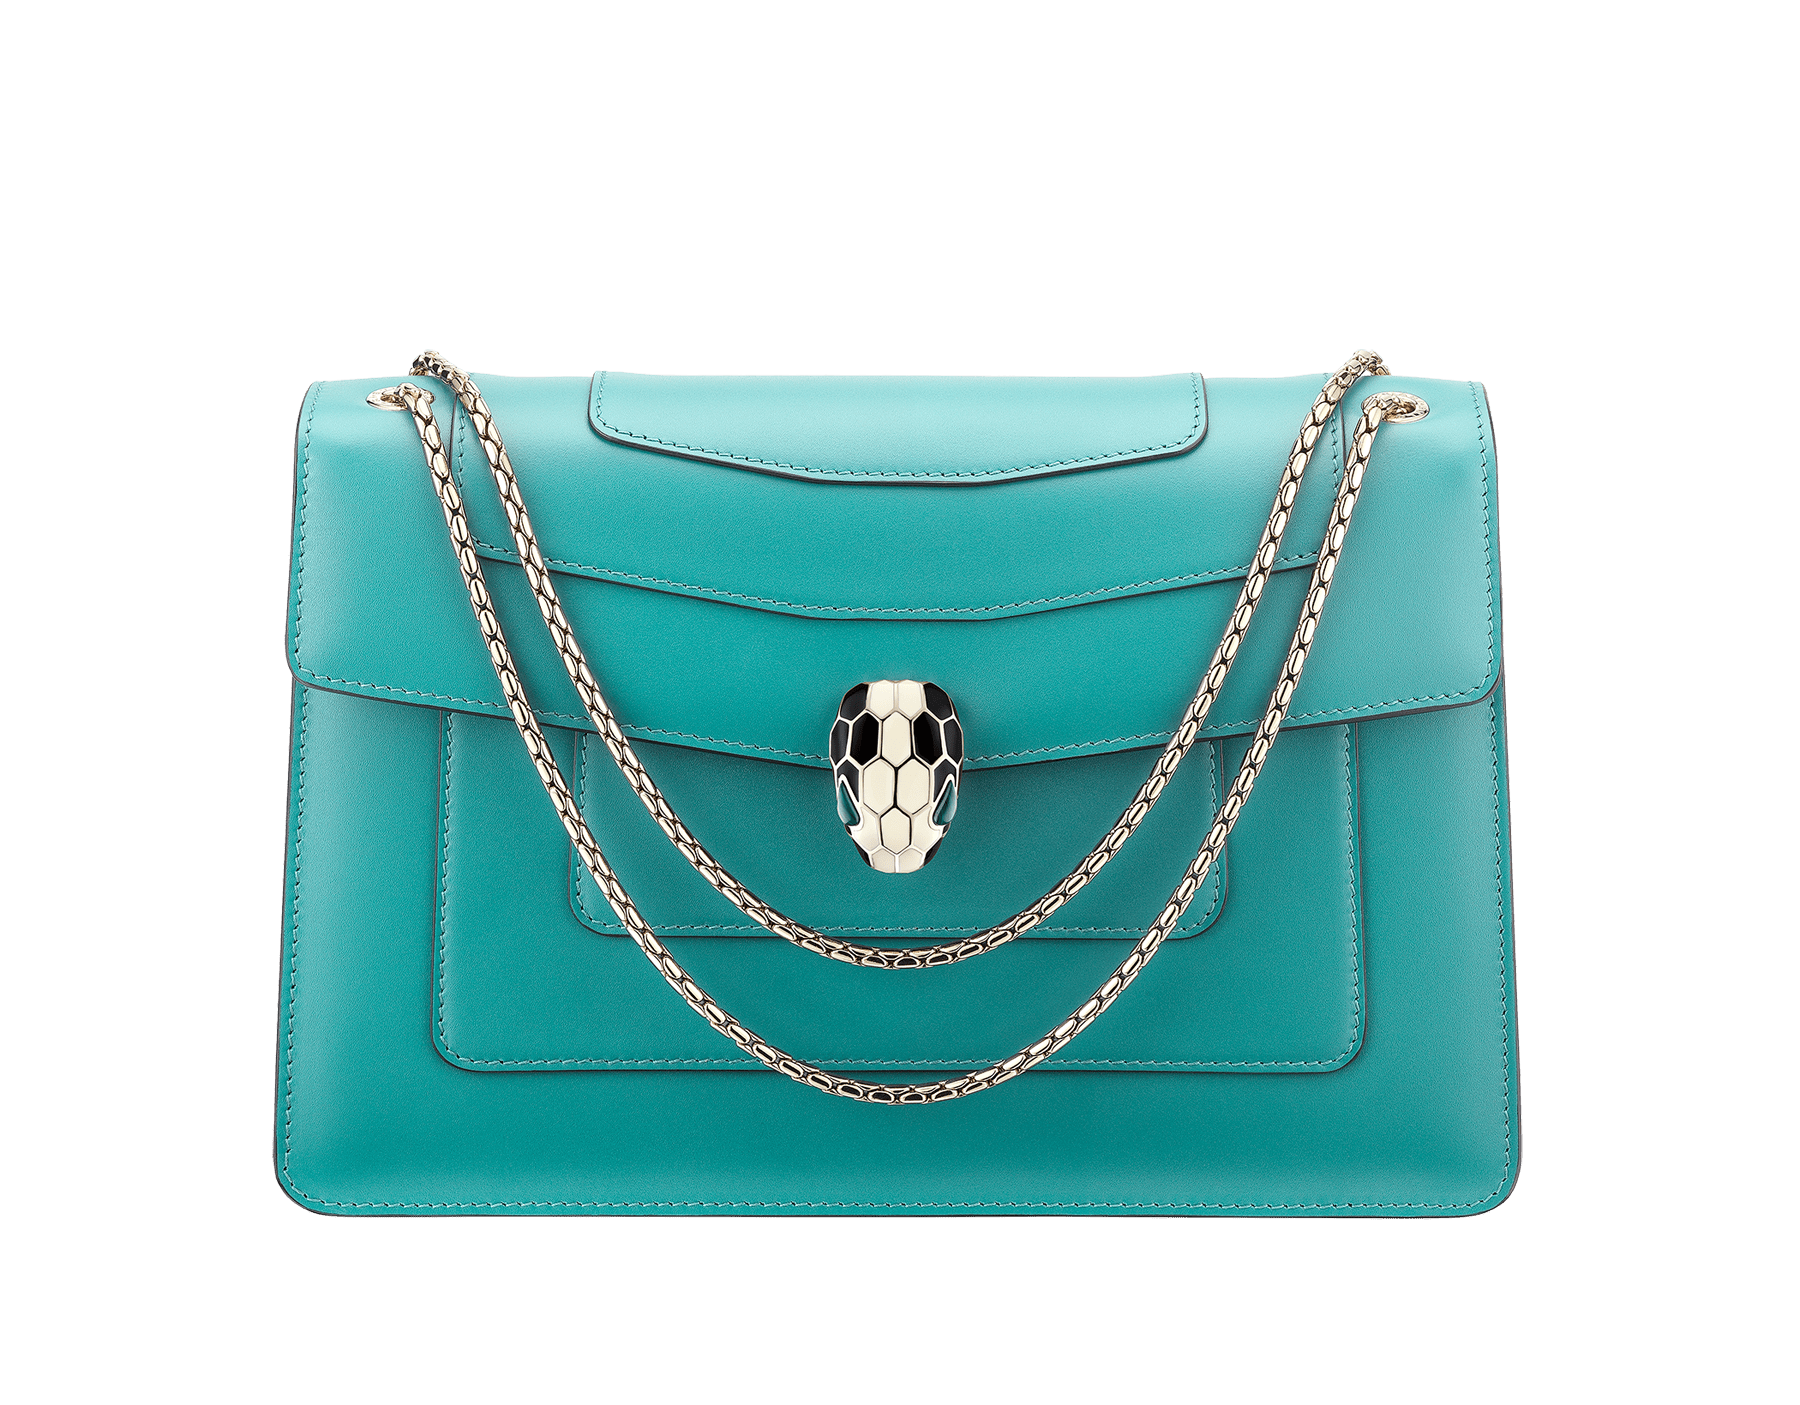 Serpenti Forever shoulder bag in arctic jade calf leather. Iconic snakehead closure in light gold plated brass embellished with black and white enamel and green malachite eyes. 288701 image 1